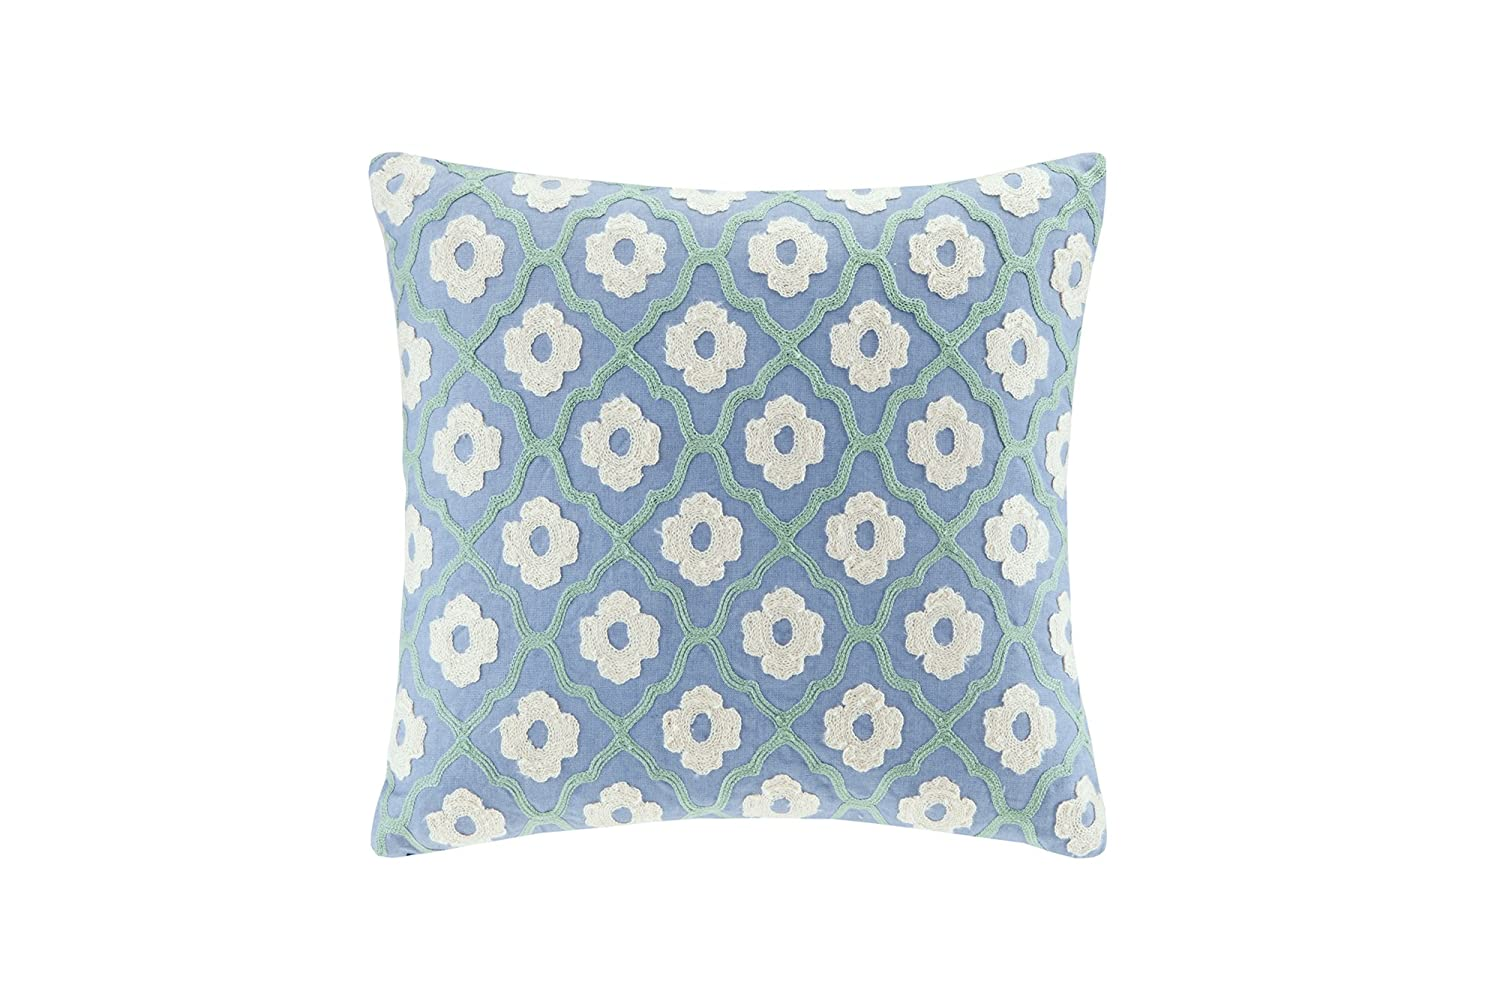 Echo Design Kamala Fashion Cotton Throw Pillow, Global Inspired Embroidered Square Decorative Pillow, 18X18, Blue/Ivory